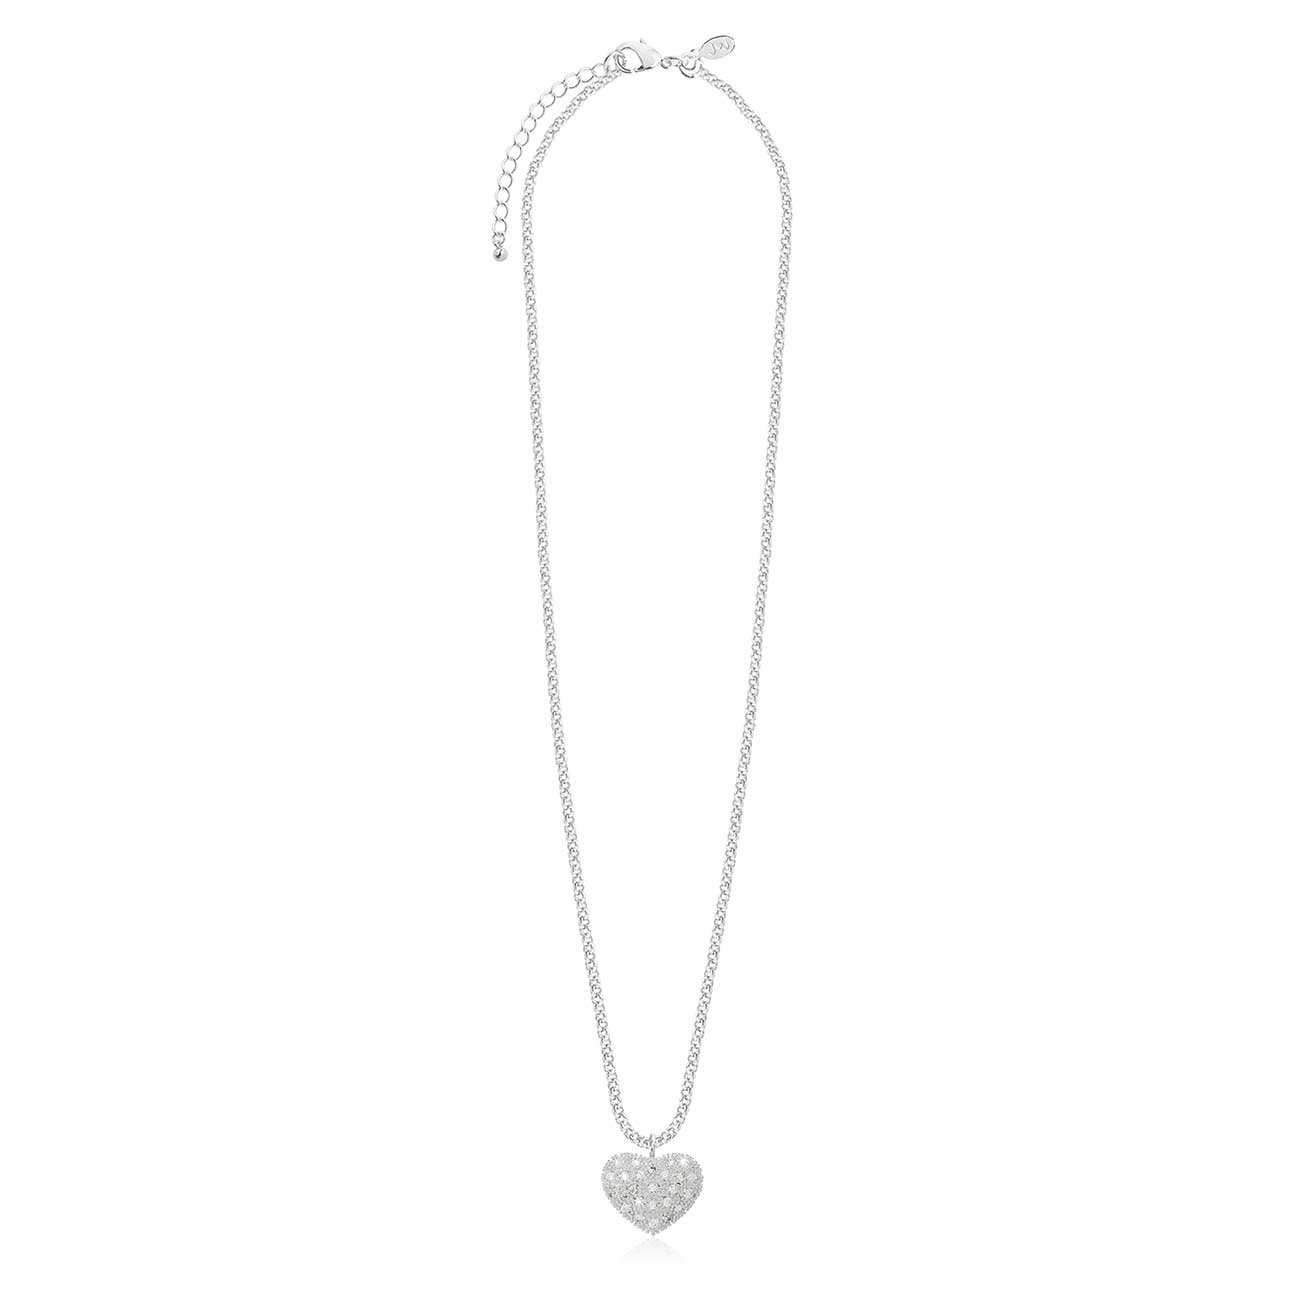 Joma Jewellery Bella Pave Heart Necklace